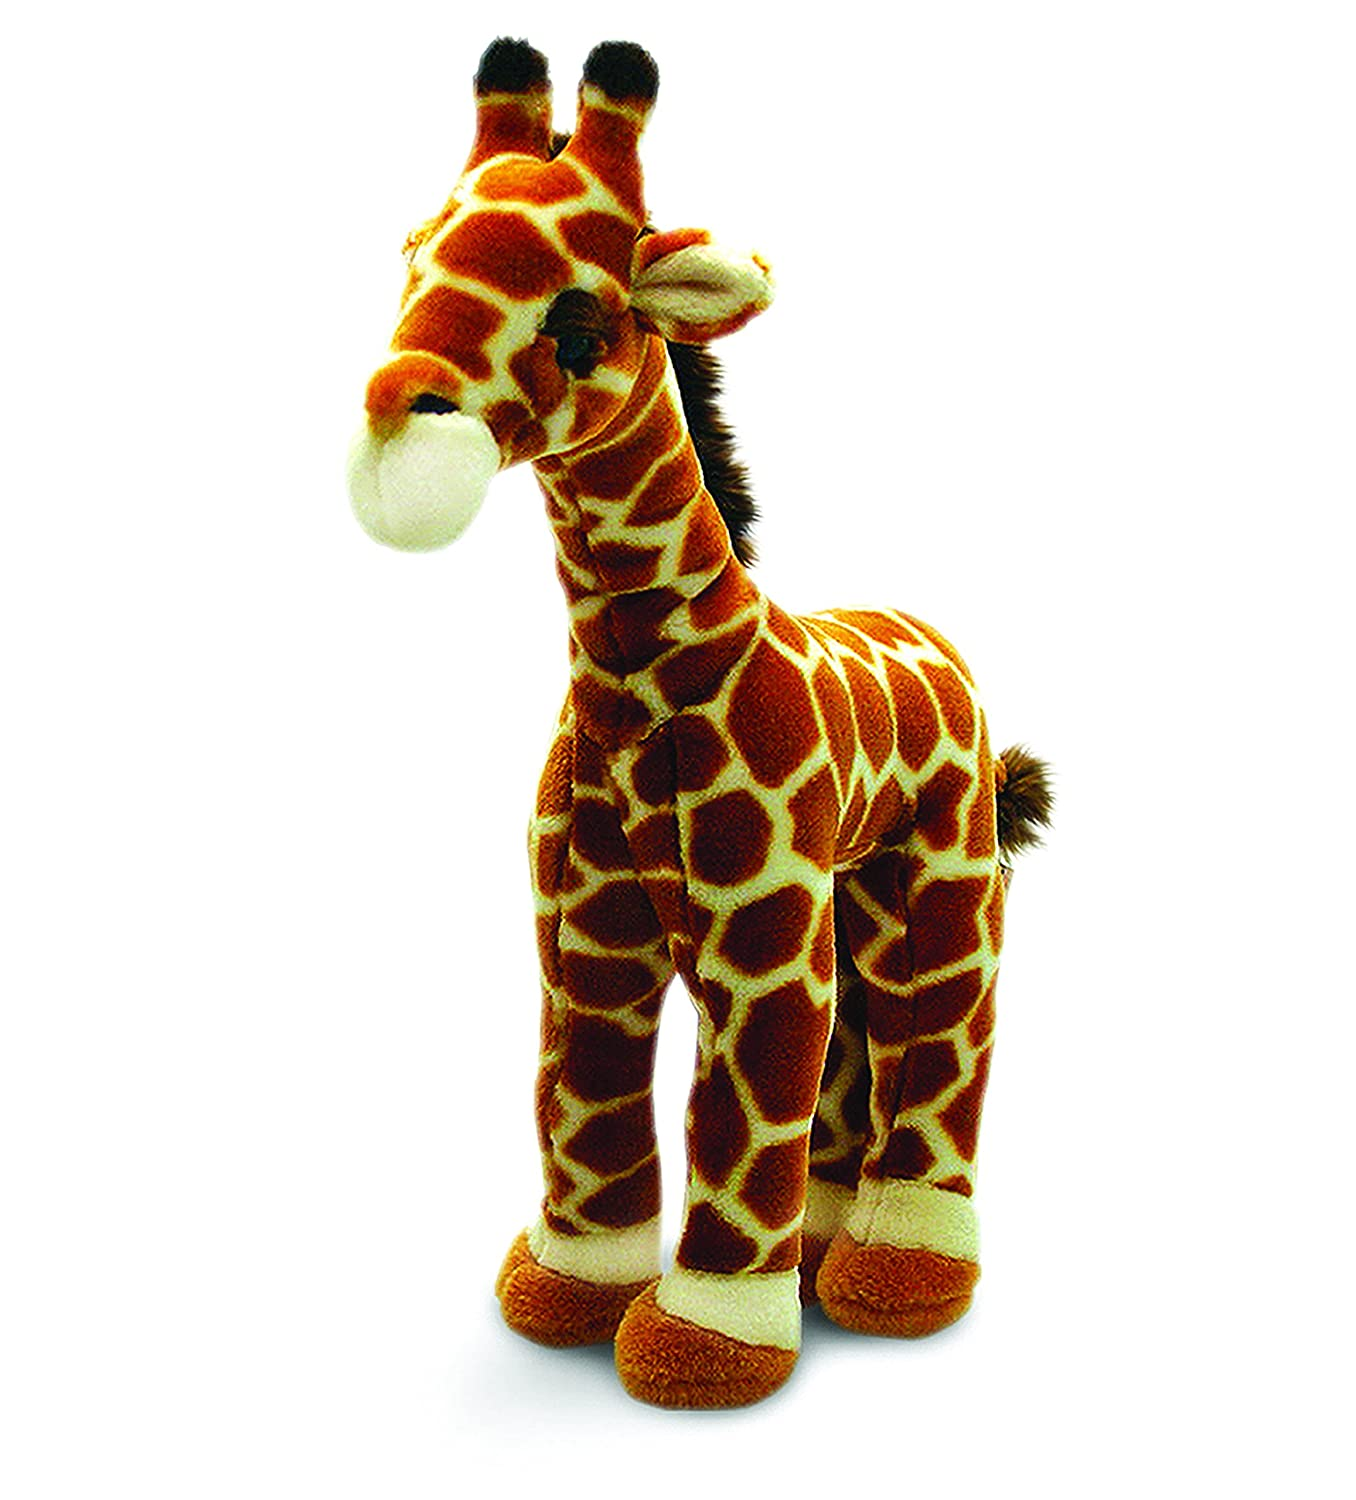 Image result for toy giraffe